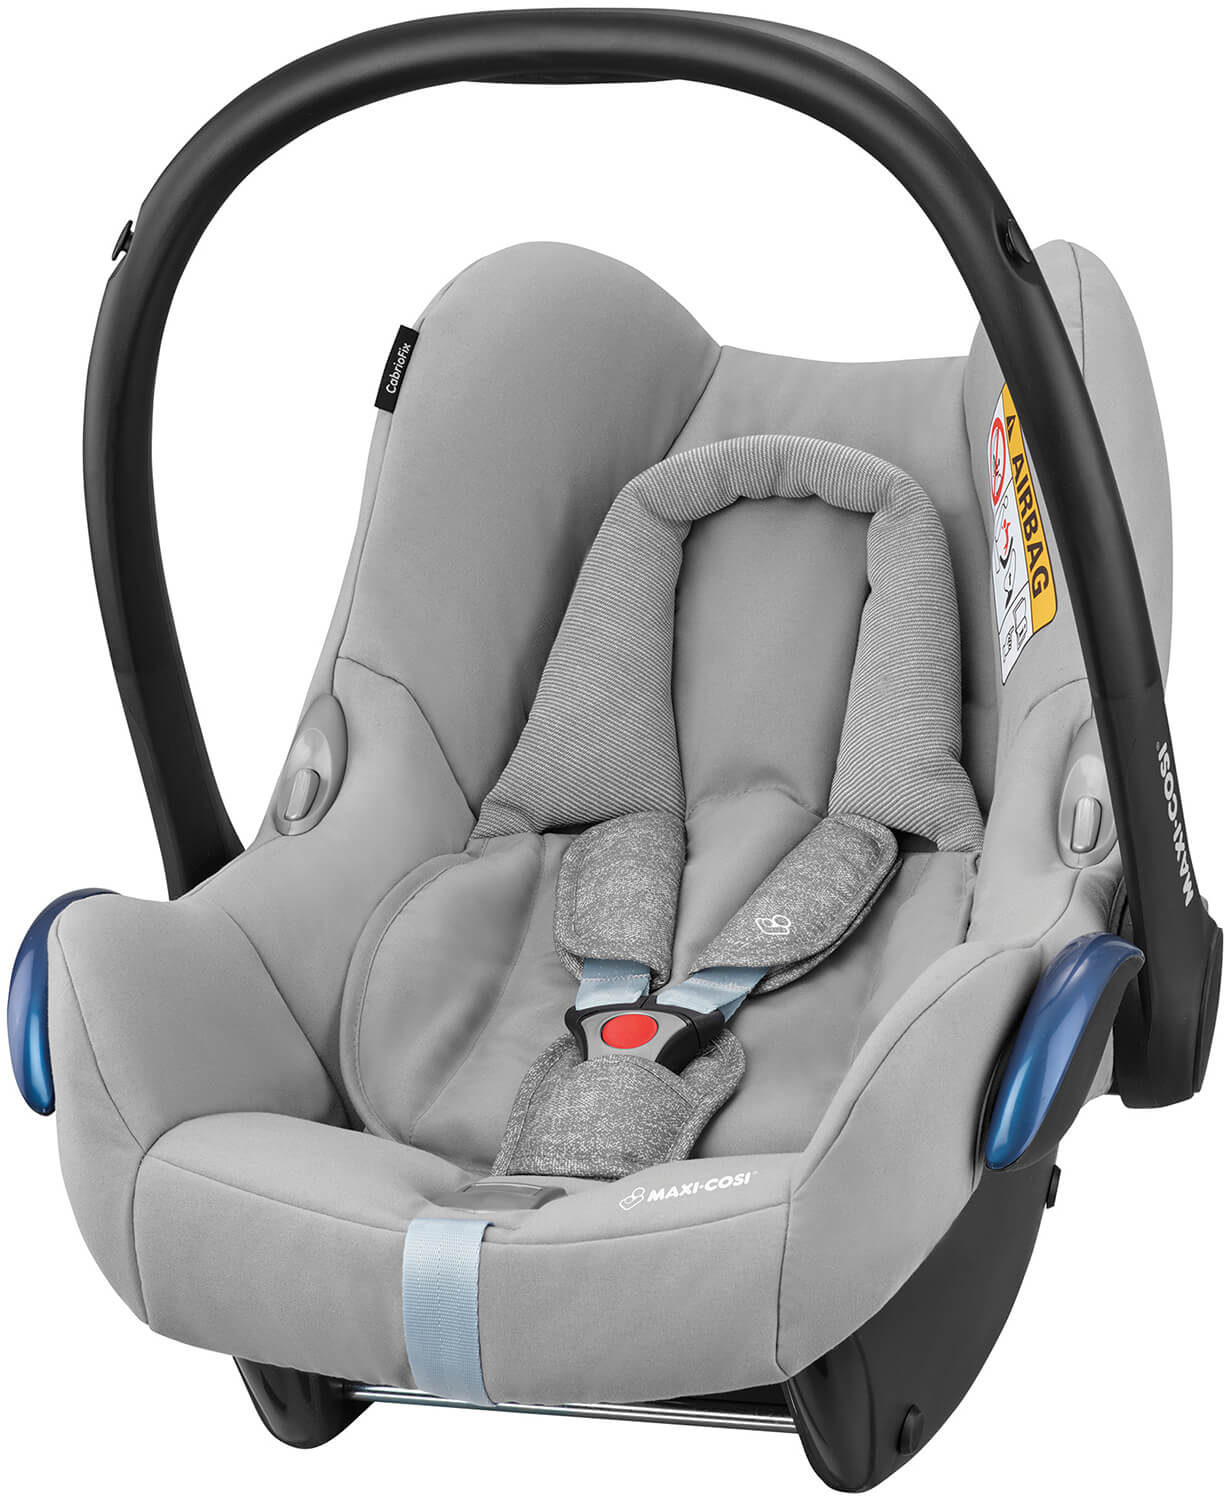 maxi cosi cabriofix nomad grey 2018 infant carrier. Black Bedroom Furniture Sets. Home Design Ideas